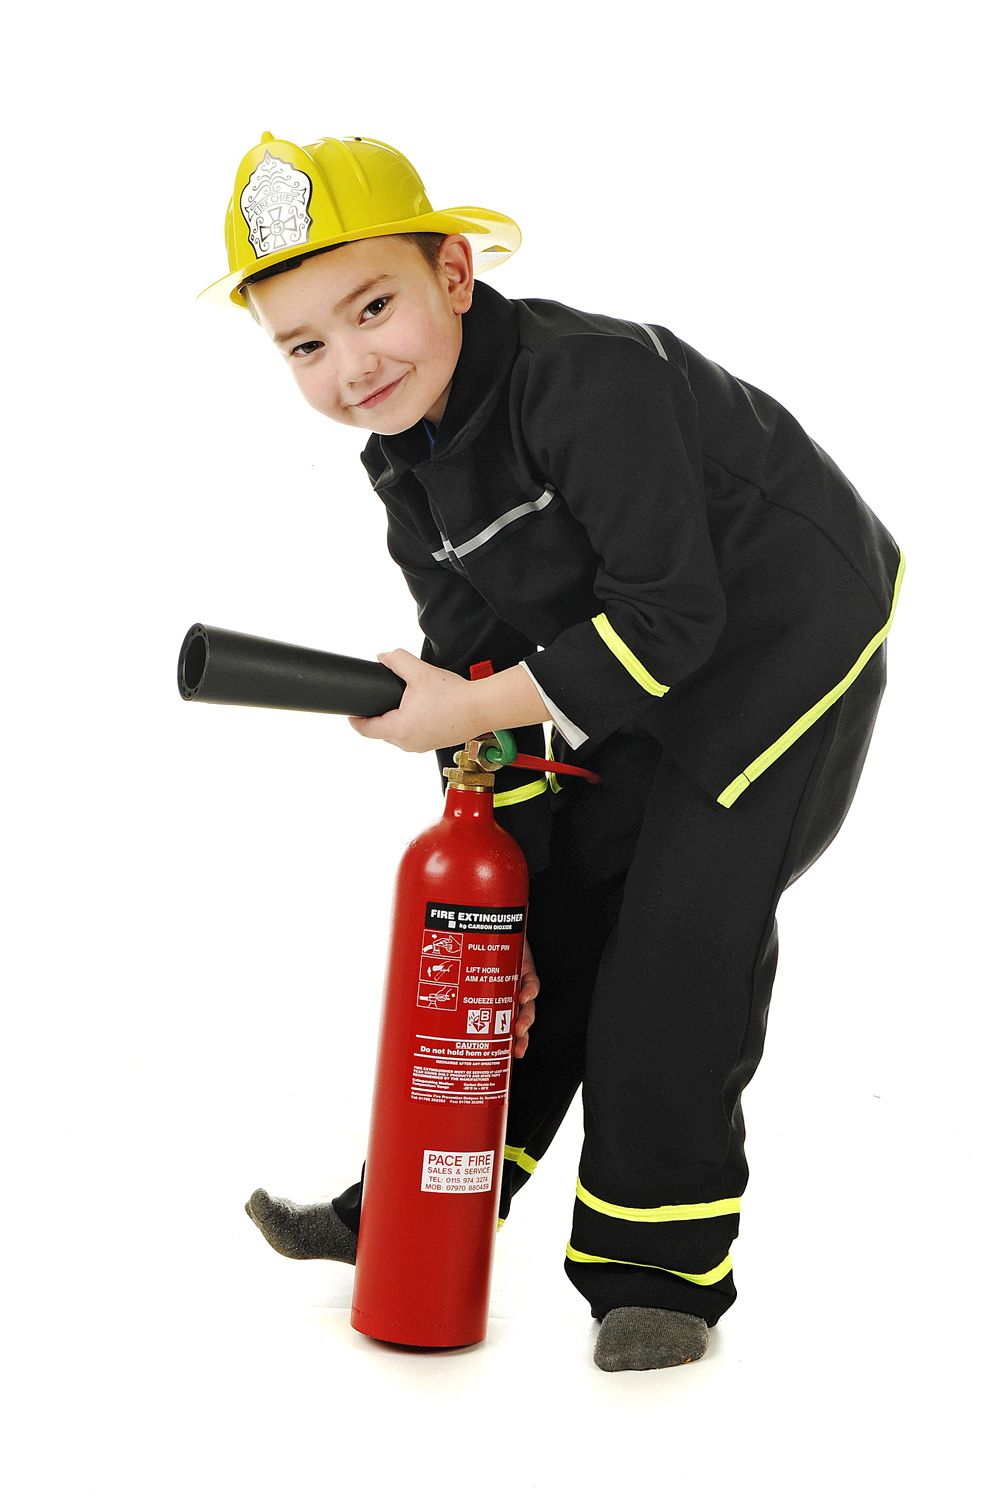 Find great deals on eBay for kids firefighter dress up. Shop with confidence.